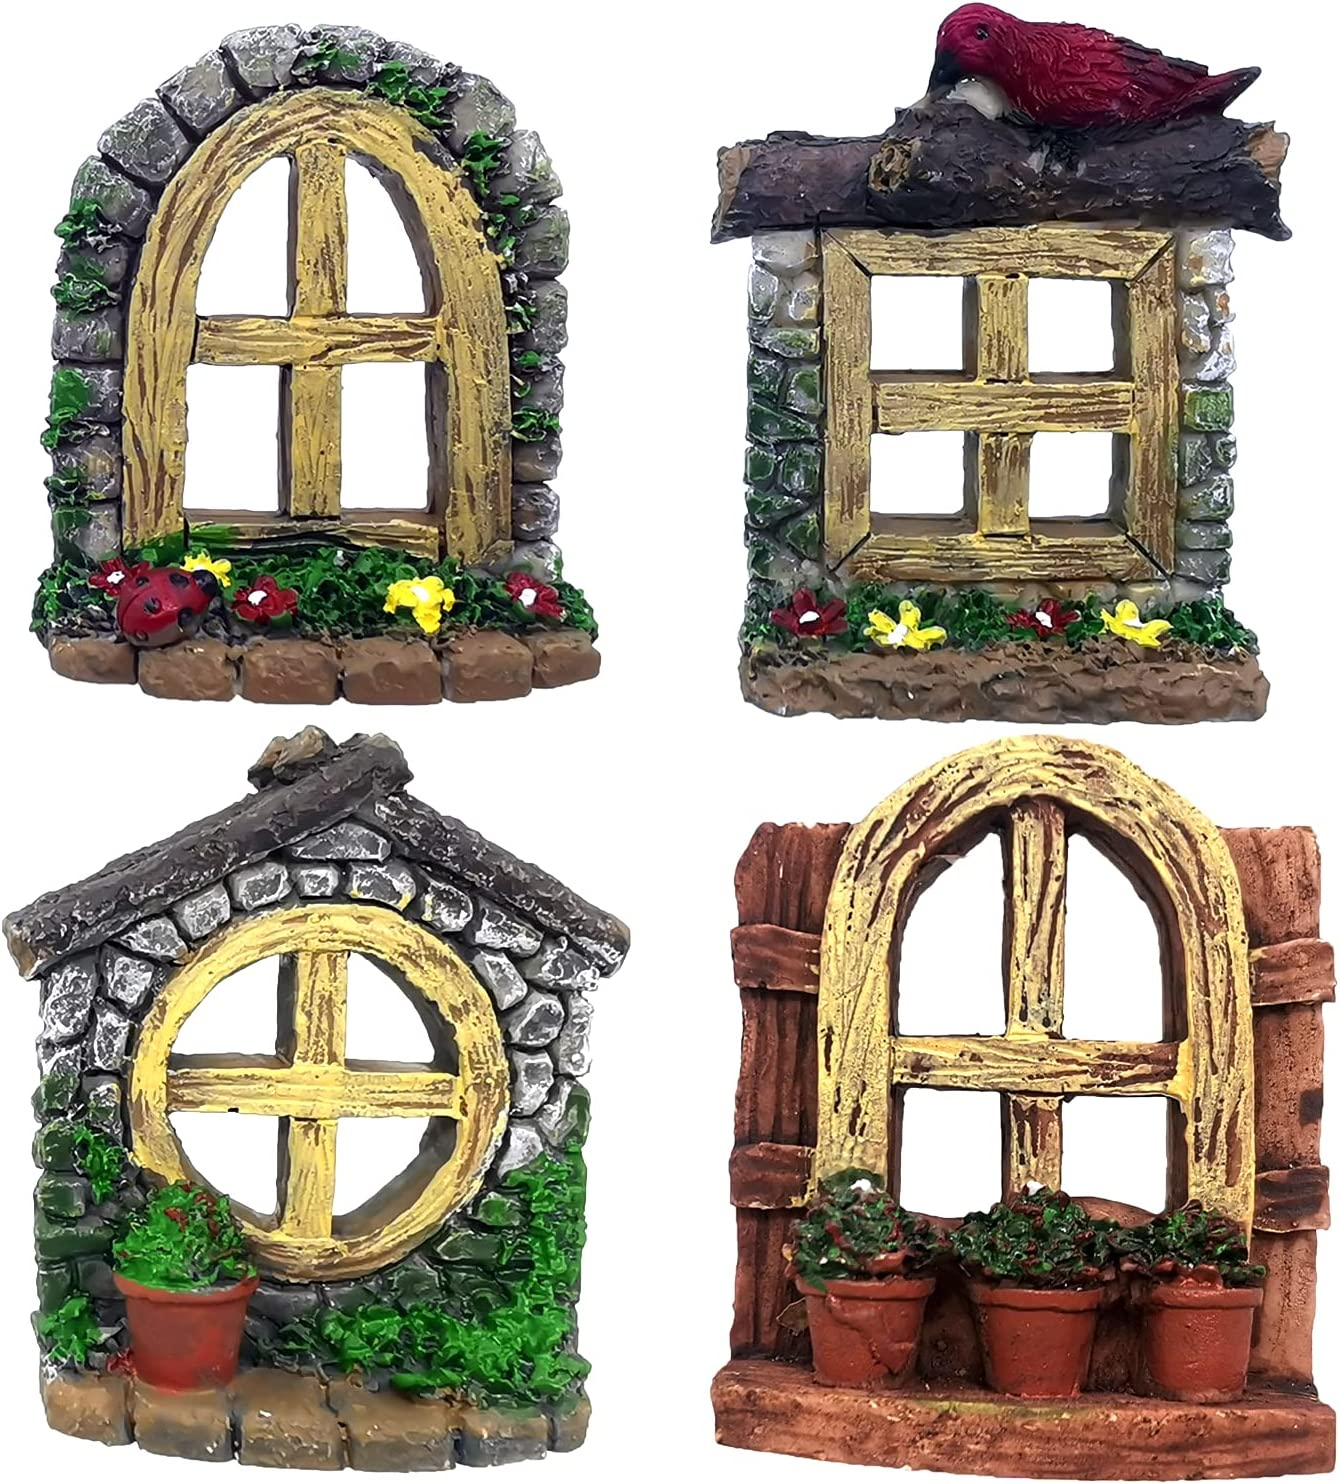 Trasfit Fairy Garden Miniature Door and Windows Accessories for Gnome Home Trees Decoration, Tree Hugger Yard and Garden Sculptures Micro Landscape Decor (Set of 4 Windows)